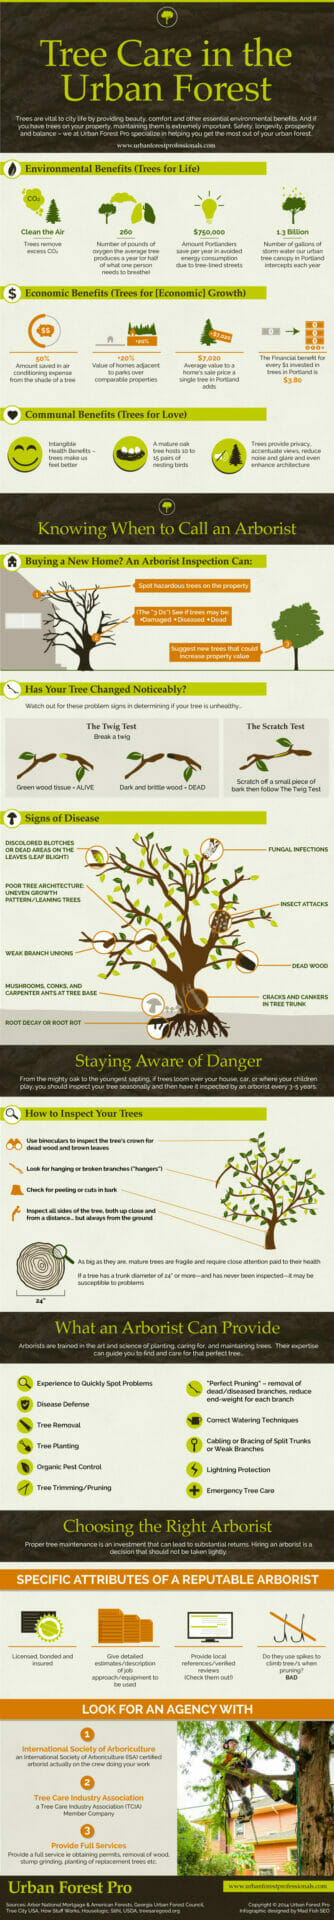 Tree care in the Urban Forest infographic and certified arborist